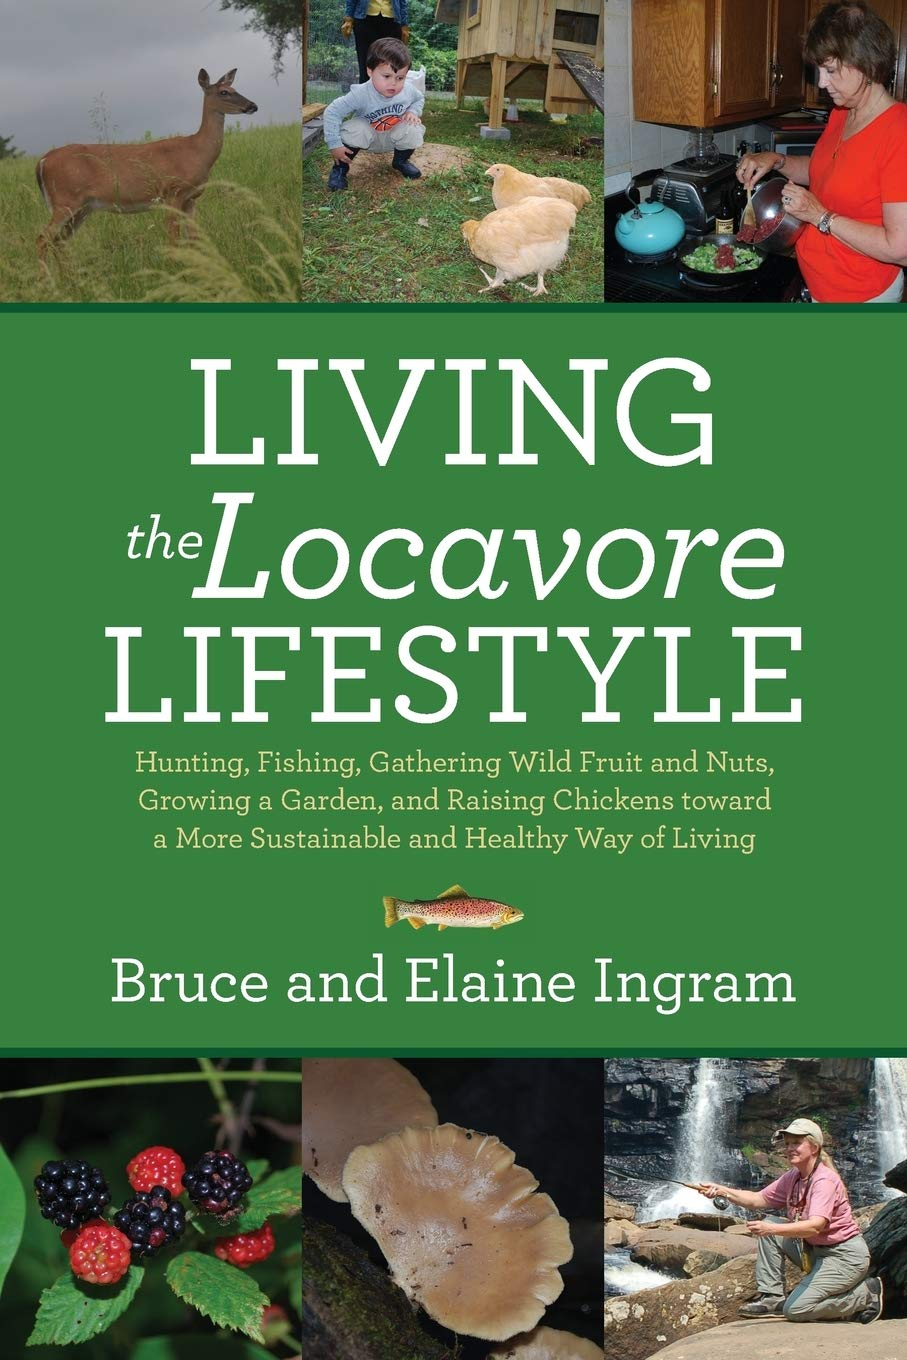 Image OfLiving The Locavore Lifestyle: Hunting, Fishing, Gathering Wild Fruit And Nuts, Growing A Garden, And Raising Chickens Tow...